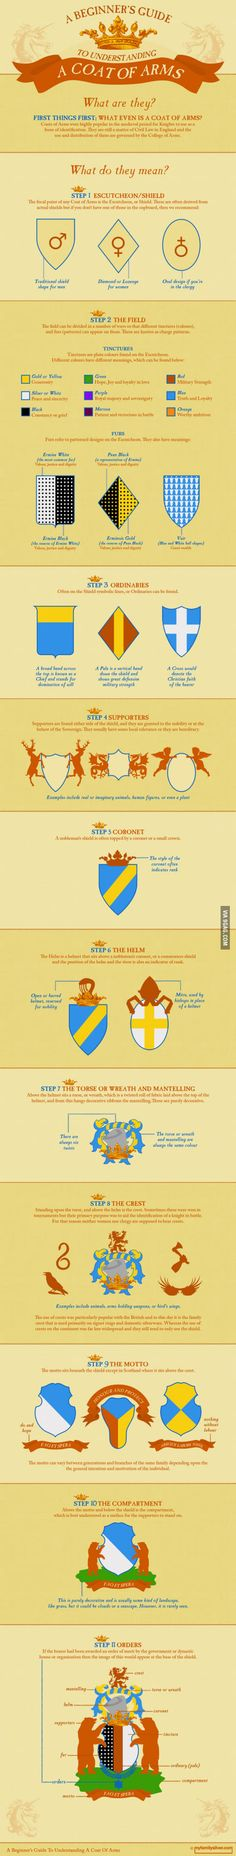 A Beginner's Guide to Understanding a Coat of Arms